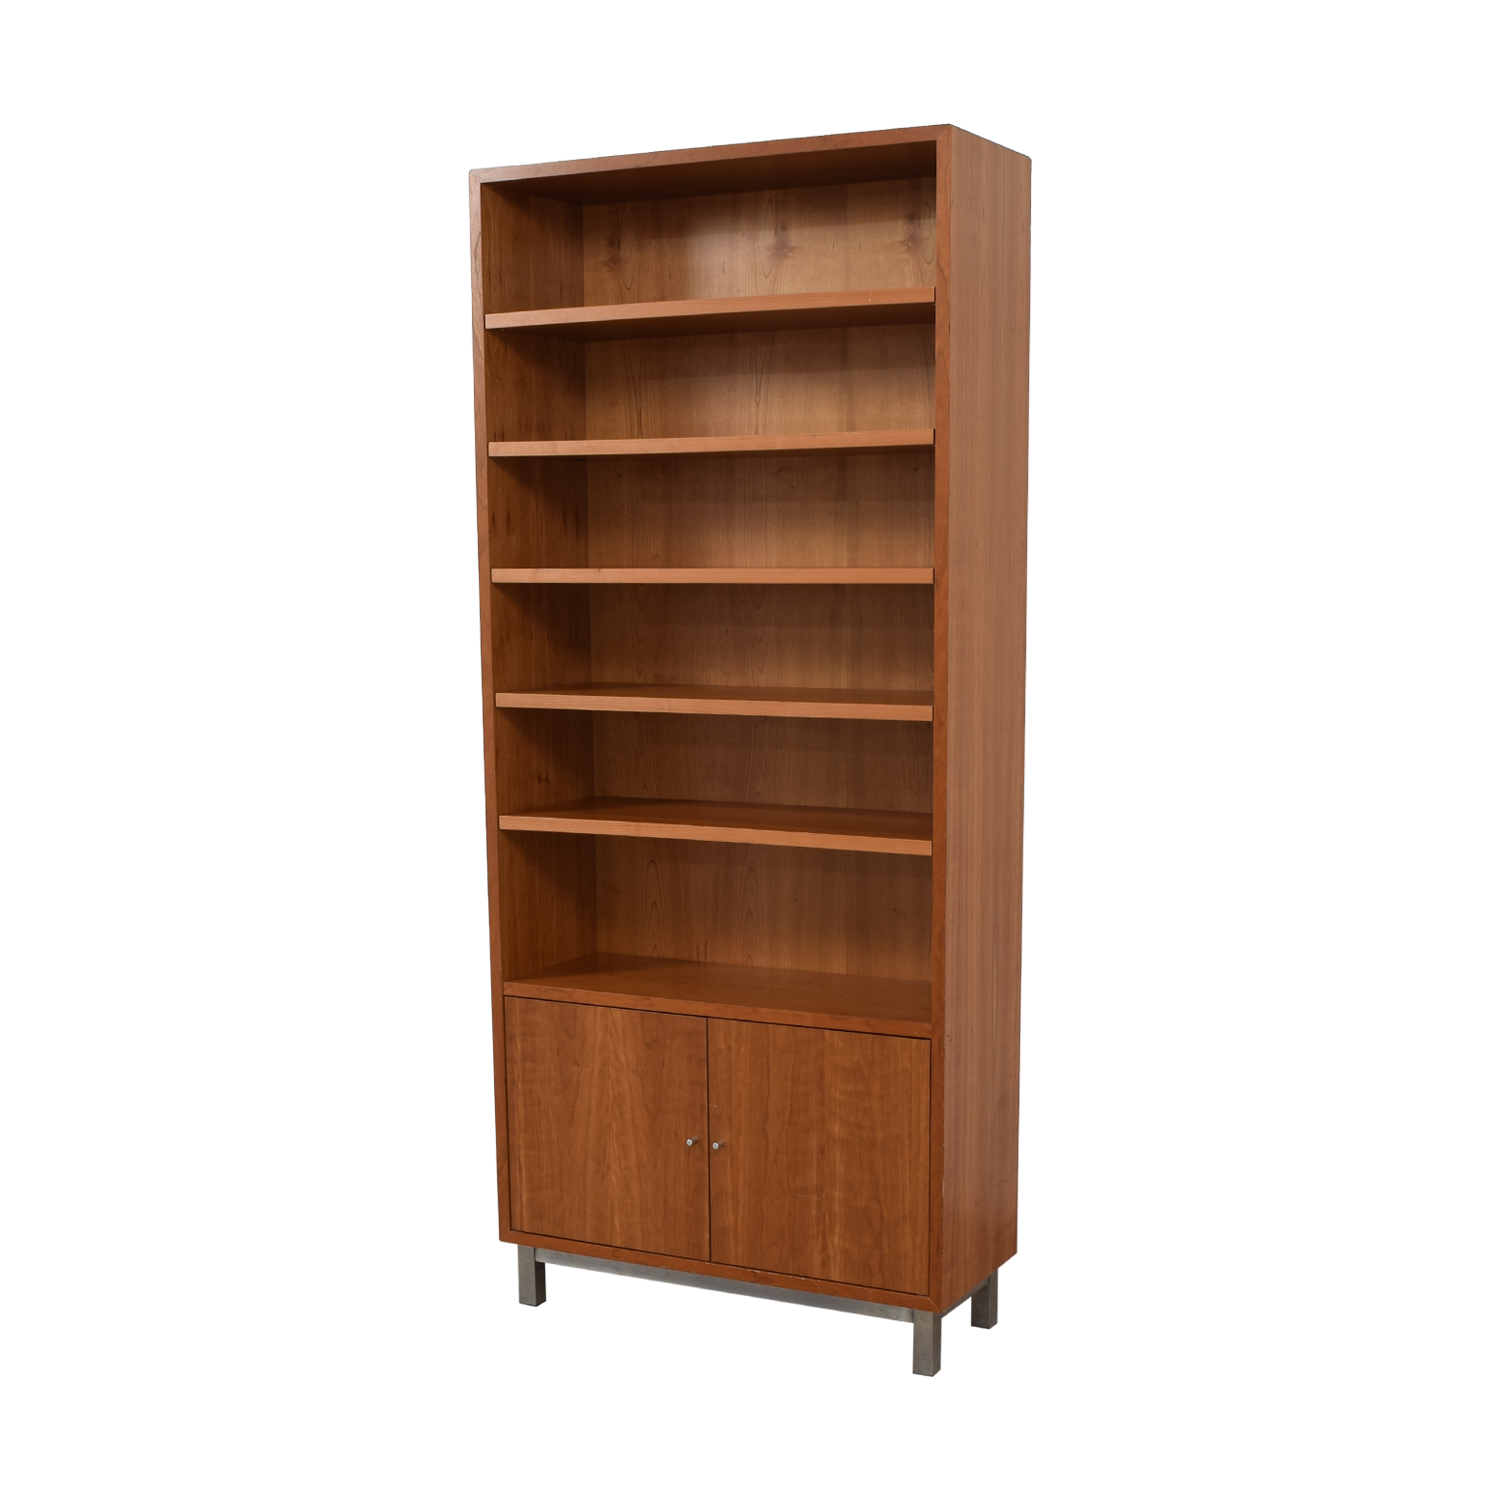 buy Room & Board Bookcase Room & Board Bookcases & Shelving